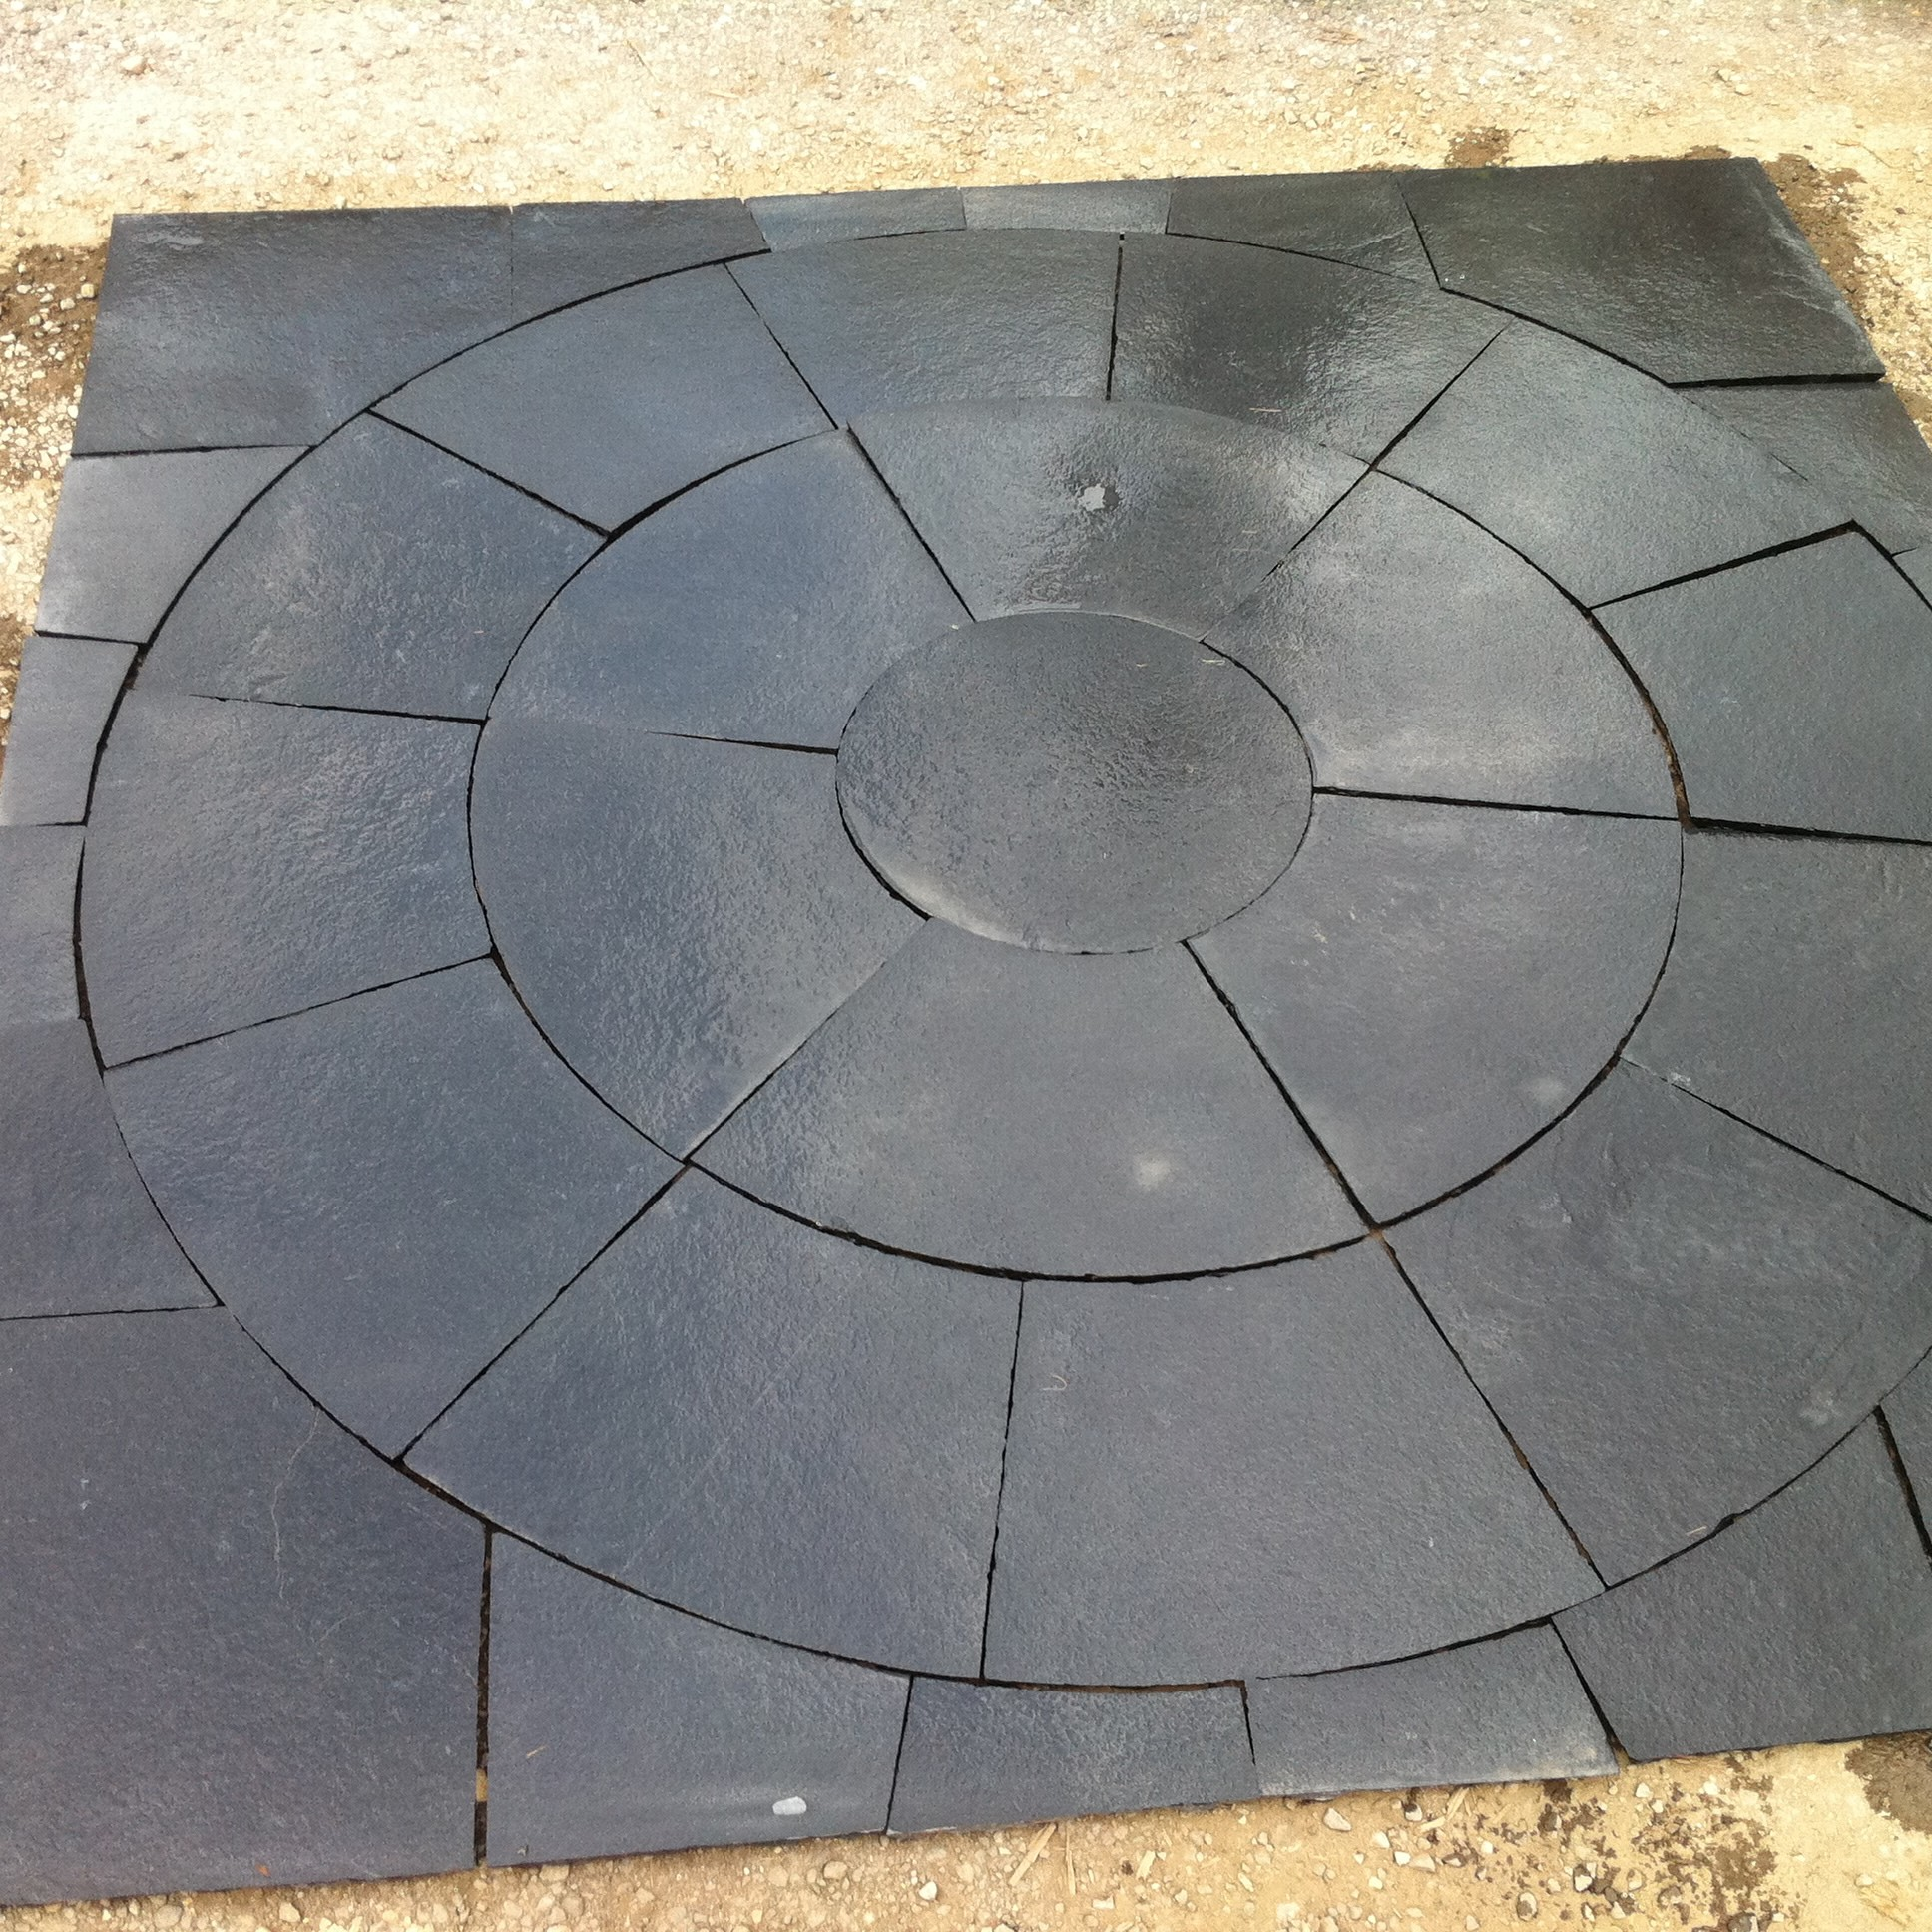 Kotah Black Indian Limestone Natural Paving Circle 2.7 Diameter with Squaring off Kit